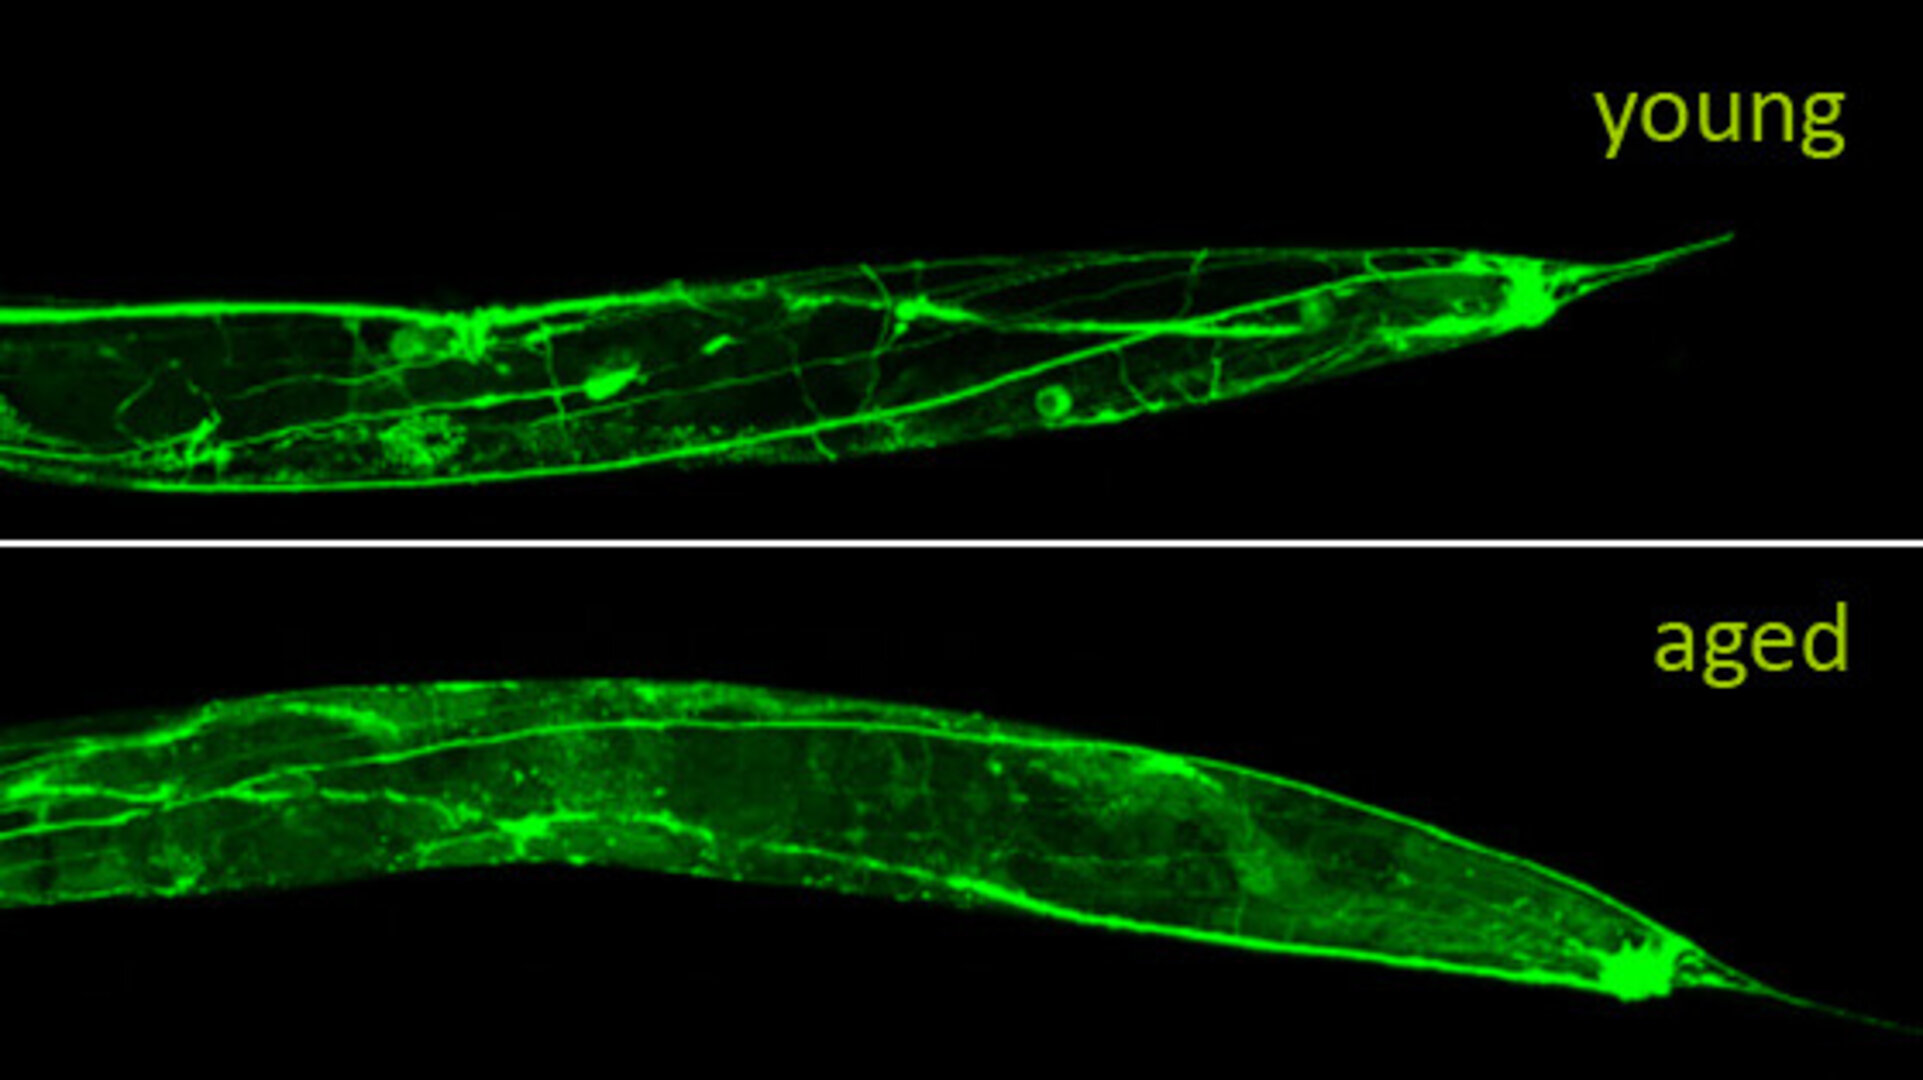 Neuronal deterioration of a worm as it ages